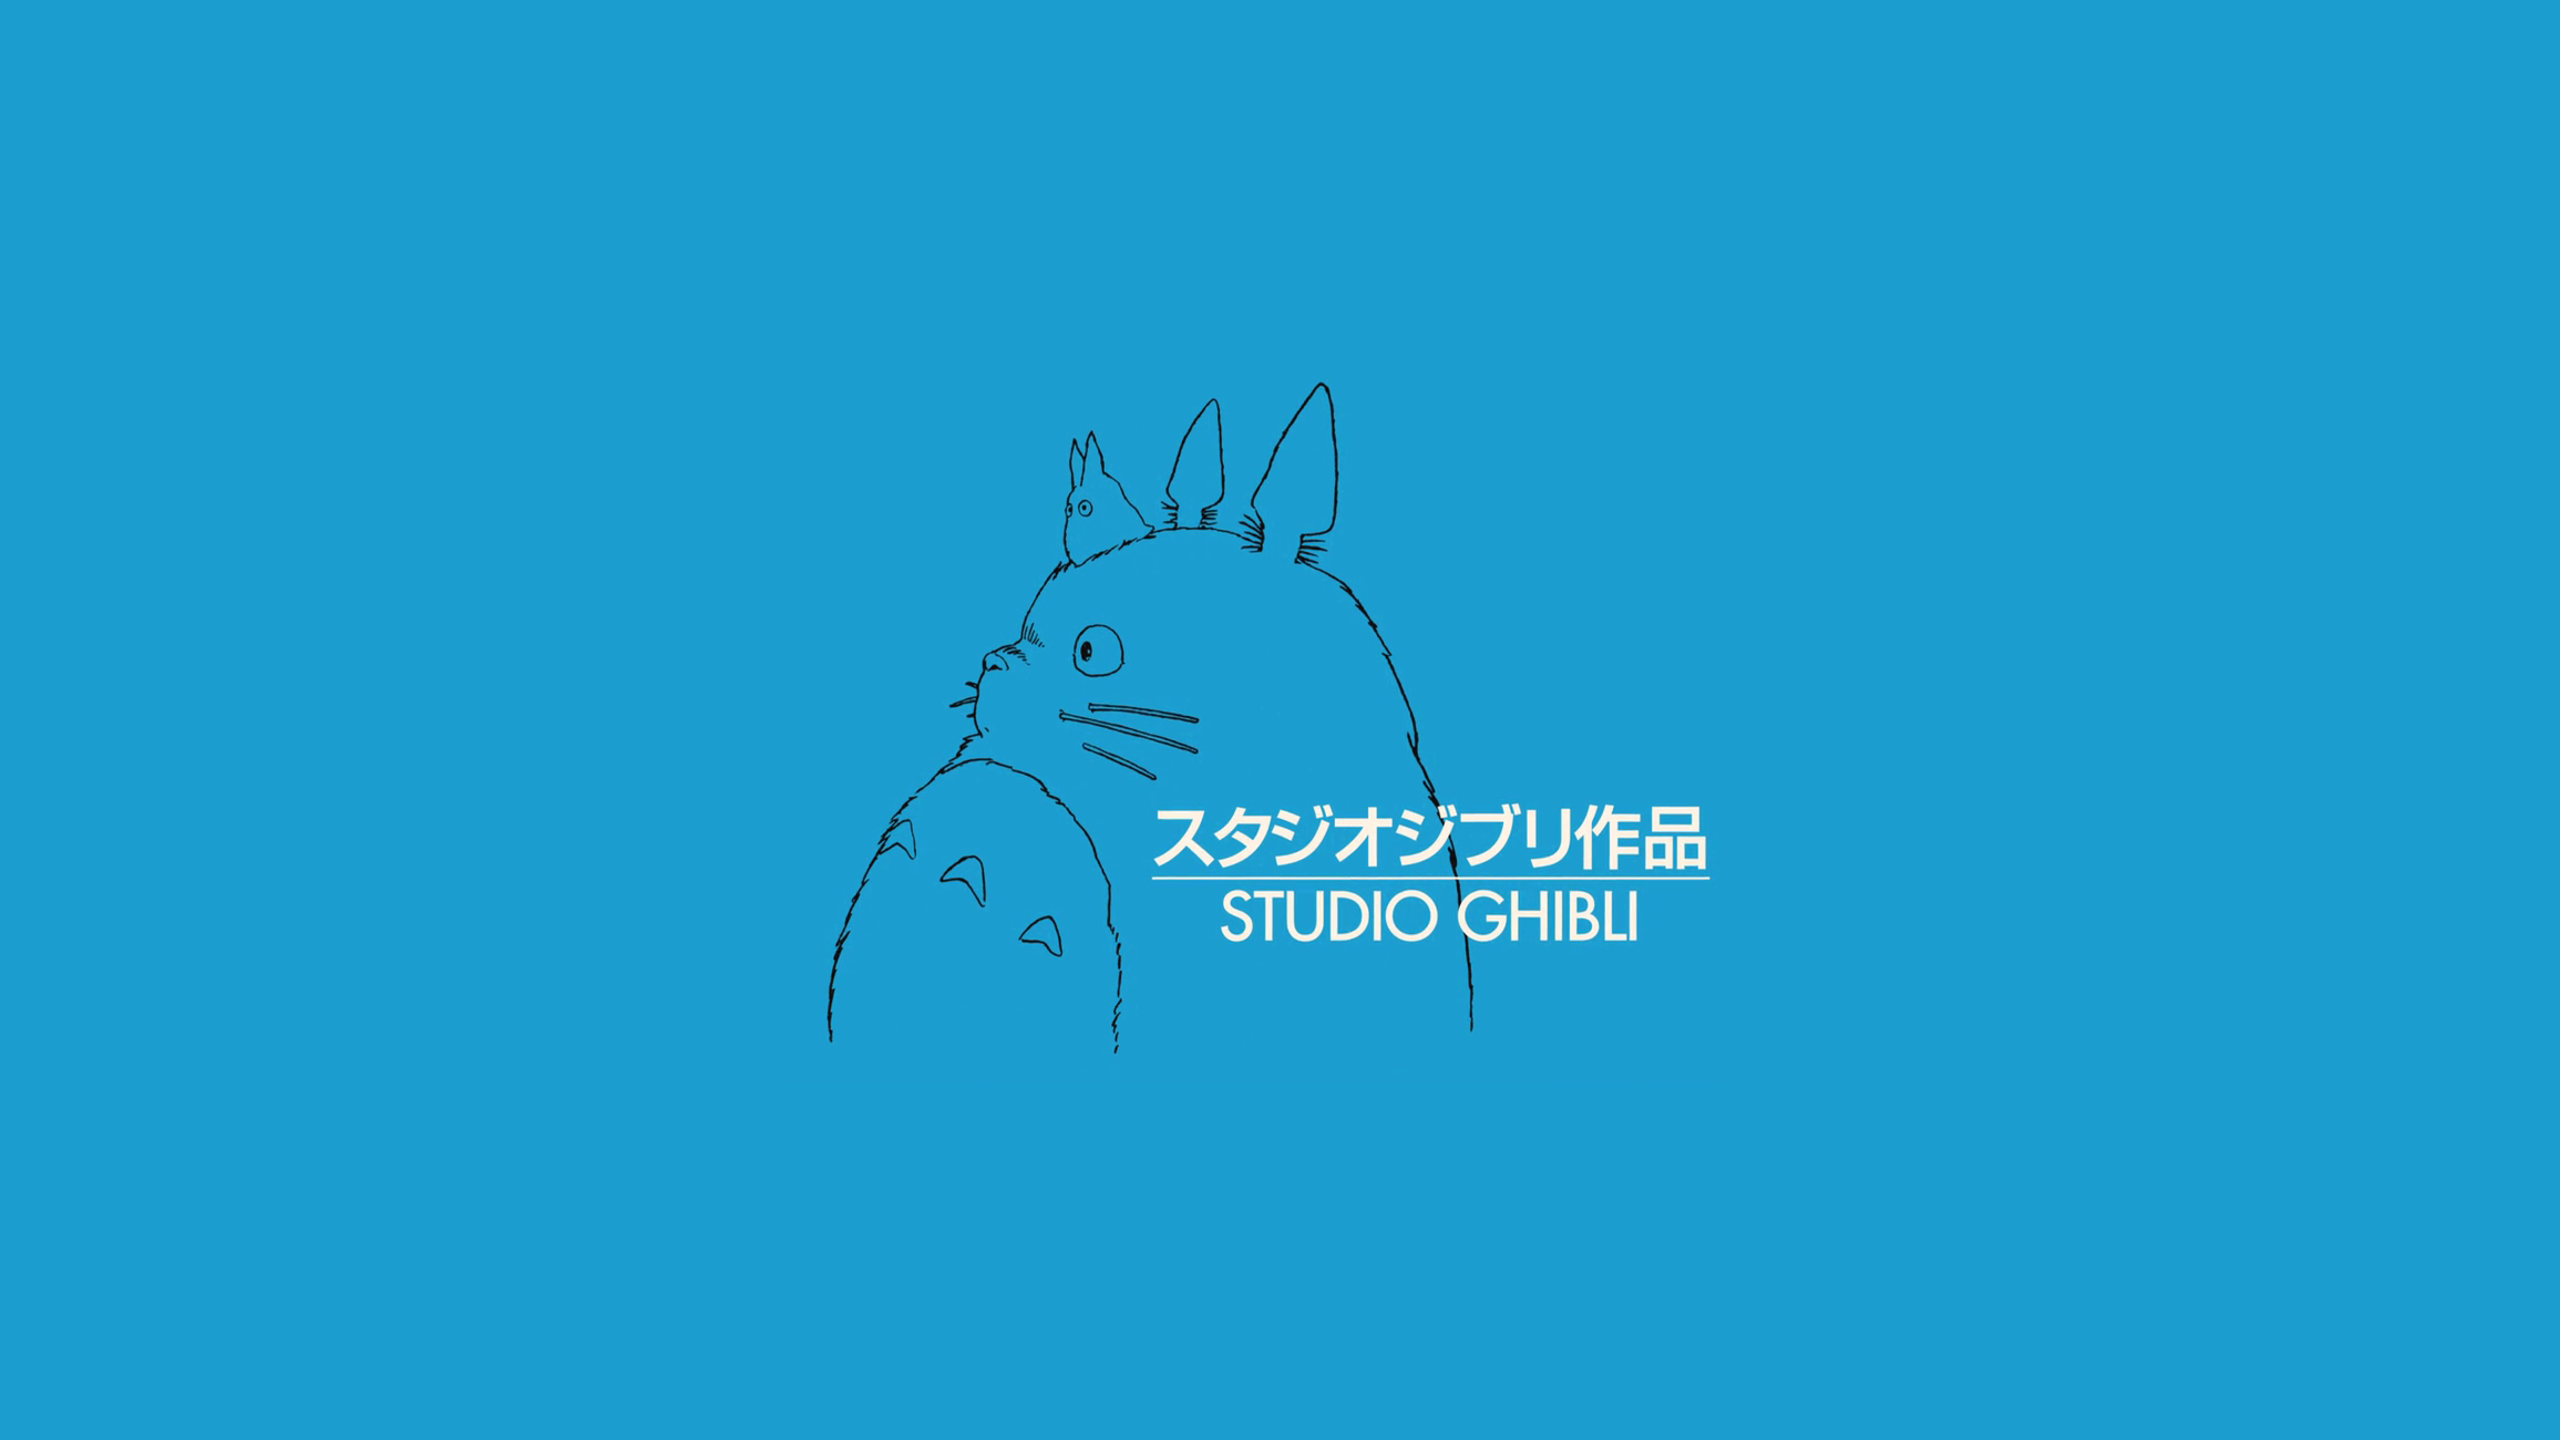 100 Studio Ghibli Wallpapers Studio Ghibli Background Ghibli Ghibli Movies